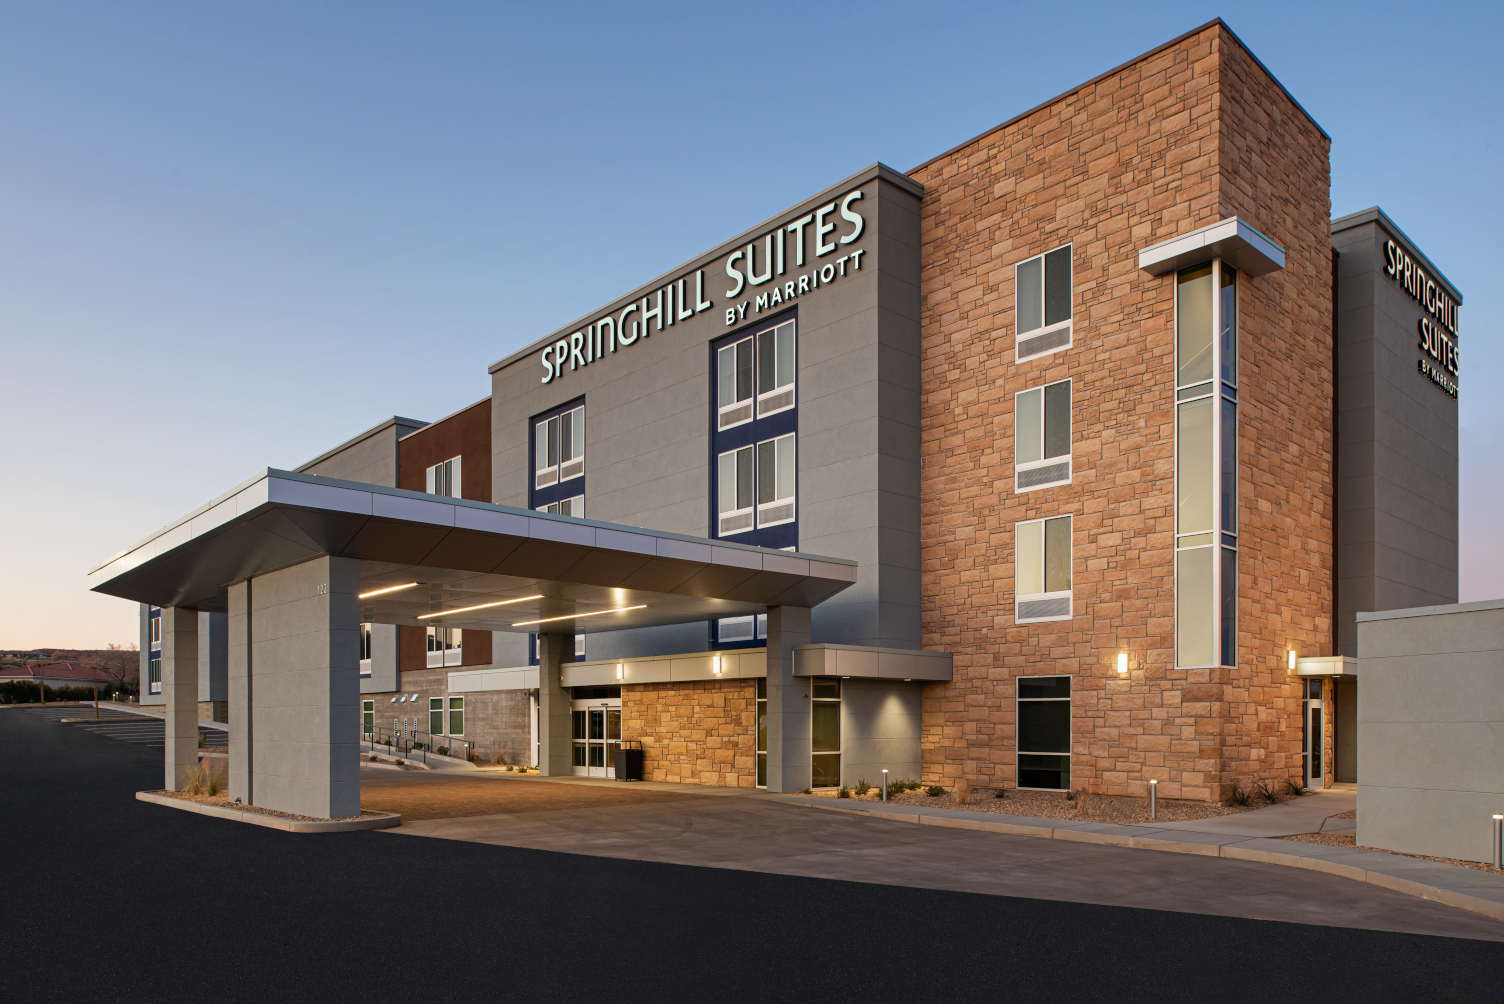 Pennbridge's Marriott SpringHill Suites St. George/Washington opened on November 22nd of 2019. The hotel is adjacent to the Green Spring Golf Course in Washington with pristine views of the local red rock hills and the distant Pine Valley Mountains. While located in a serene environment backing a golf course, the… Continue Reading..